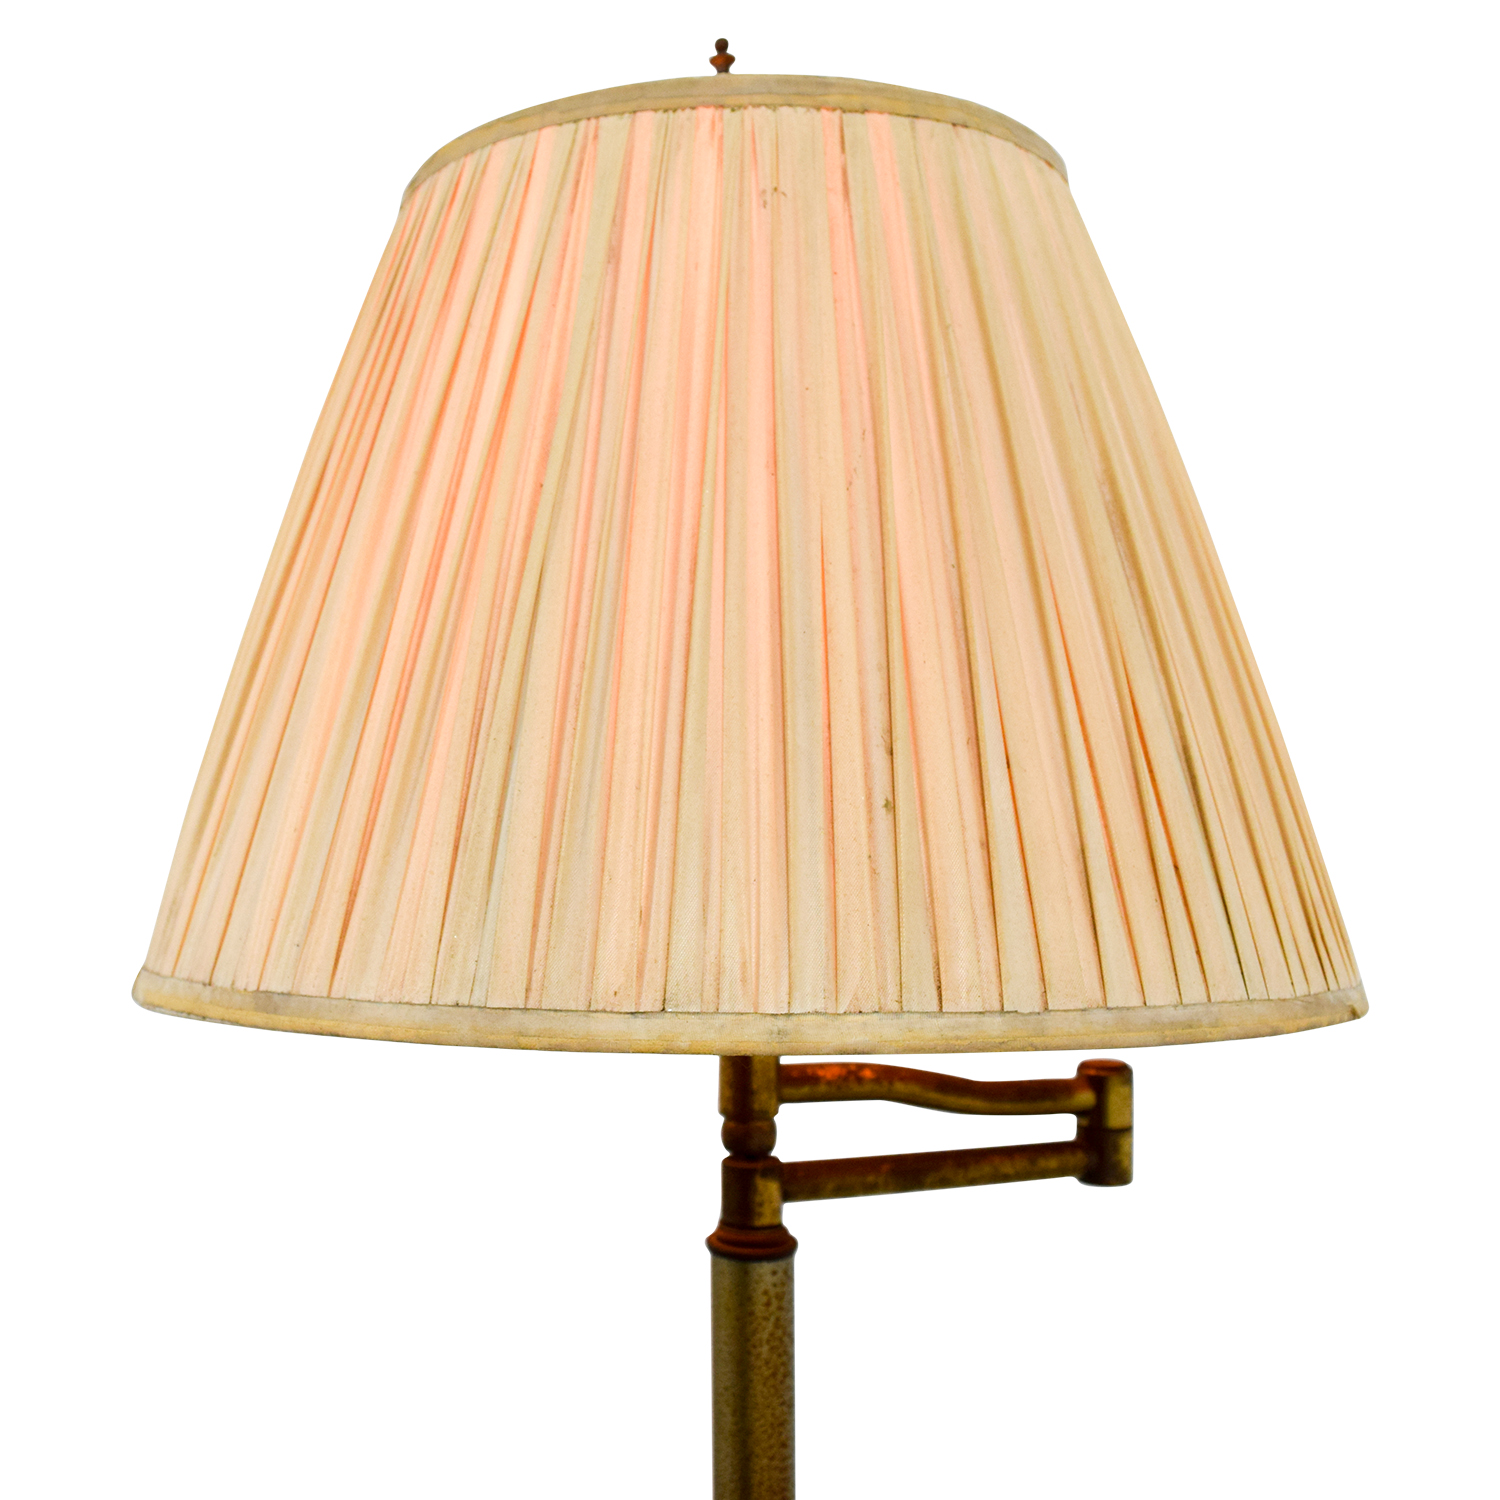 81 off brass floor lamp with accordion shade decor shop brass floor lamp with accordion shade decor aloadofball Gallery